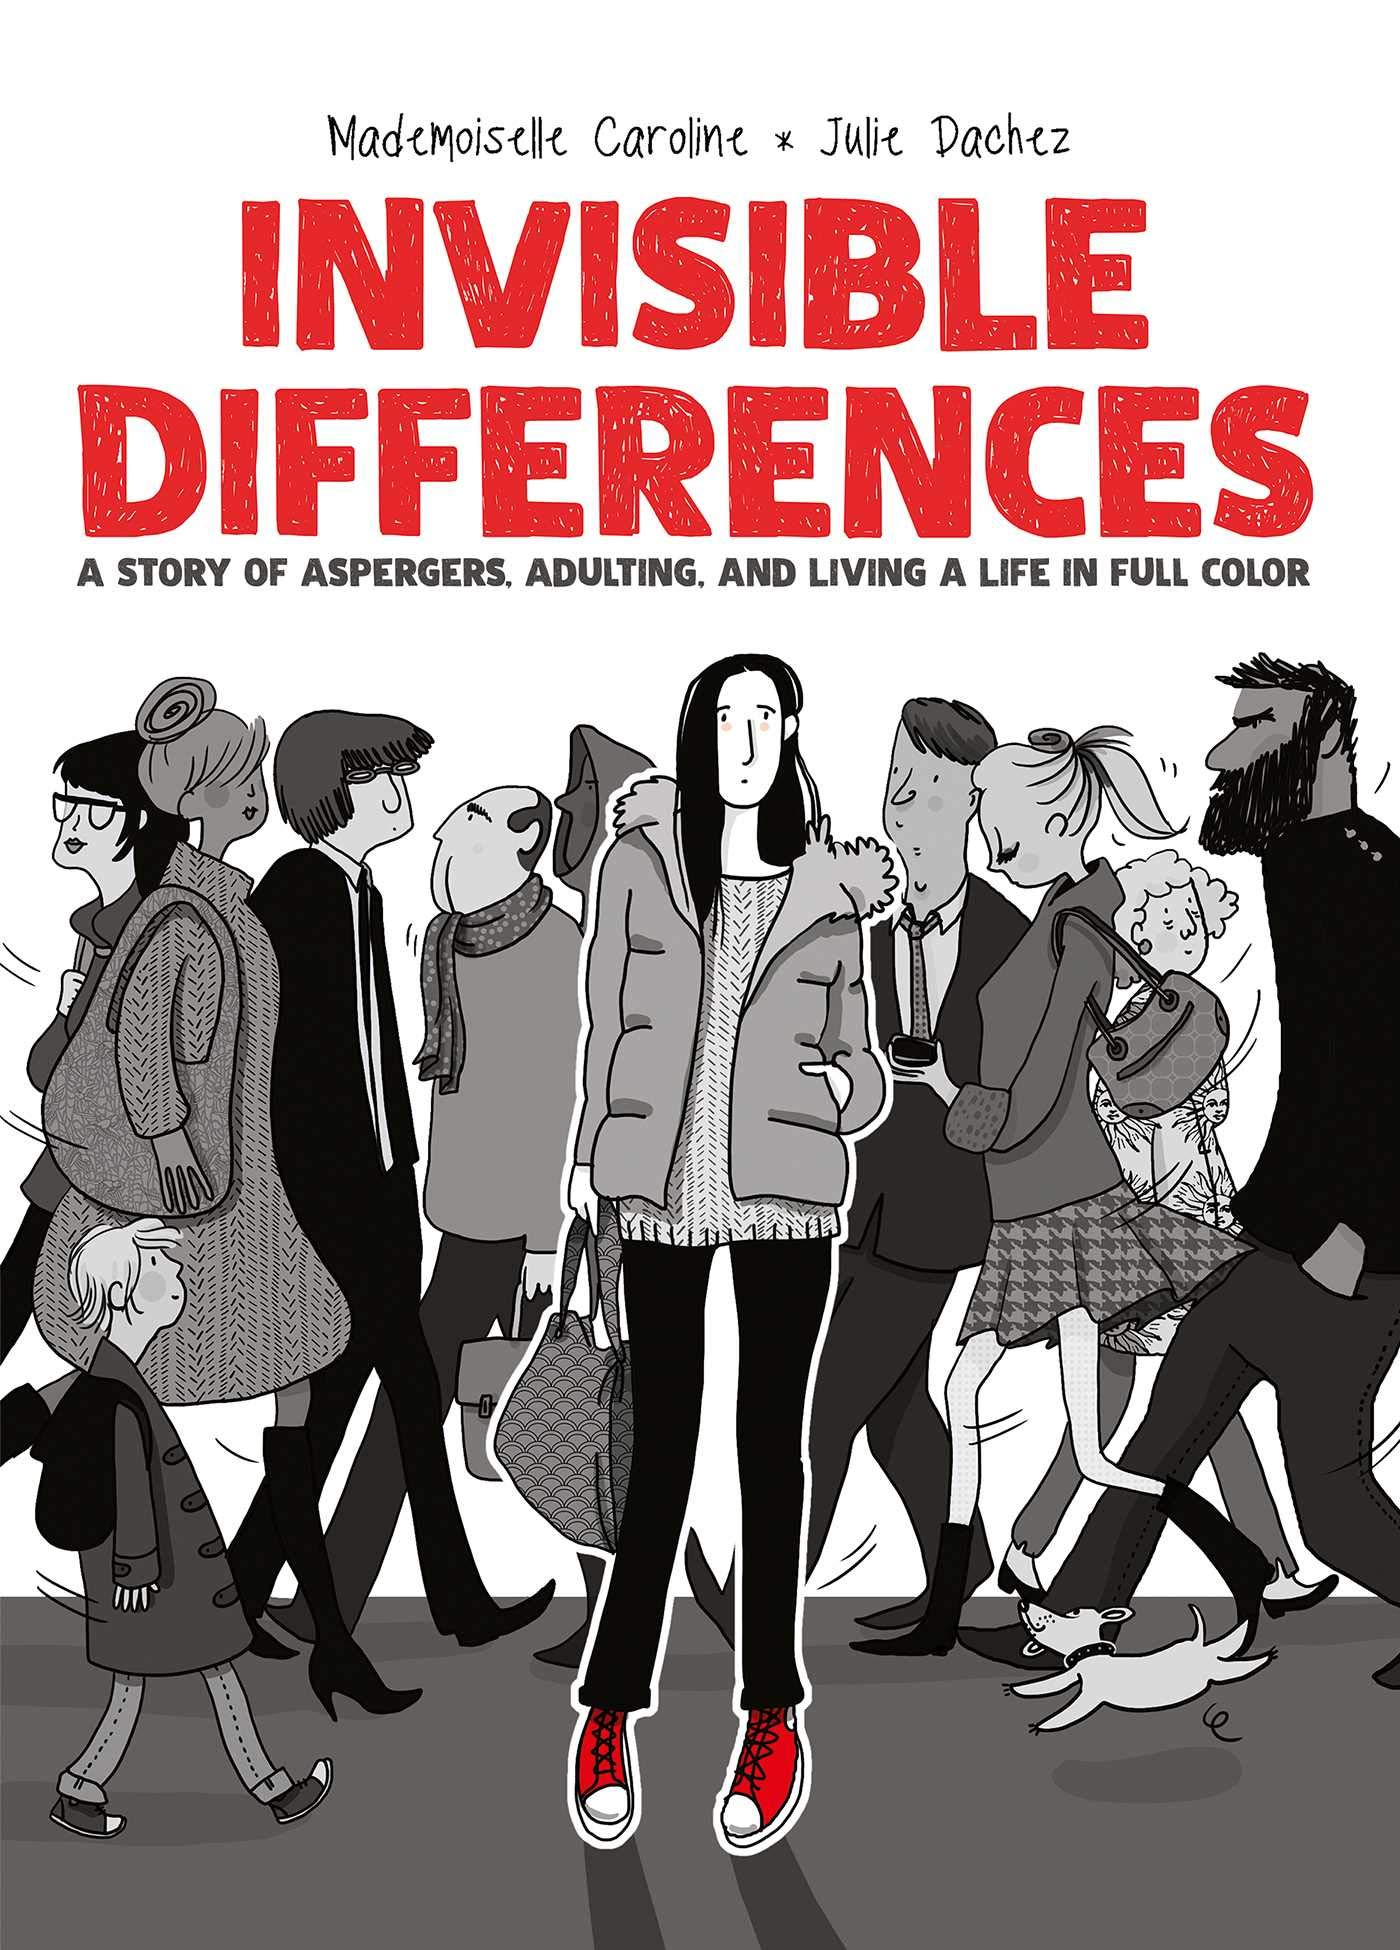 Invisible Differences: Julie Dachez: 9781620107669: Amazon.com: Books